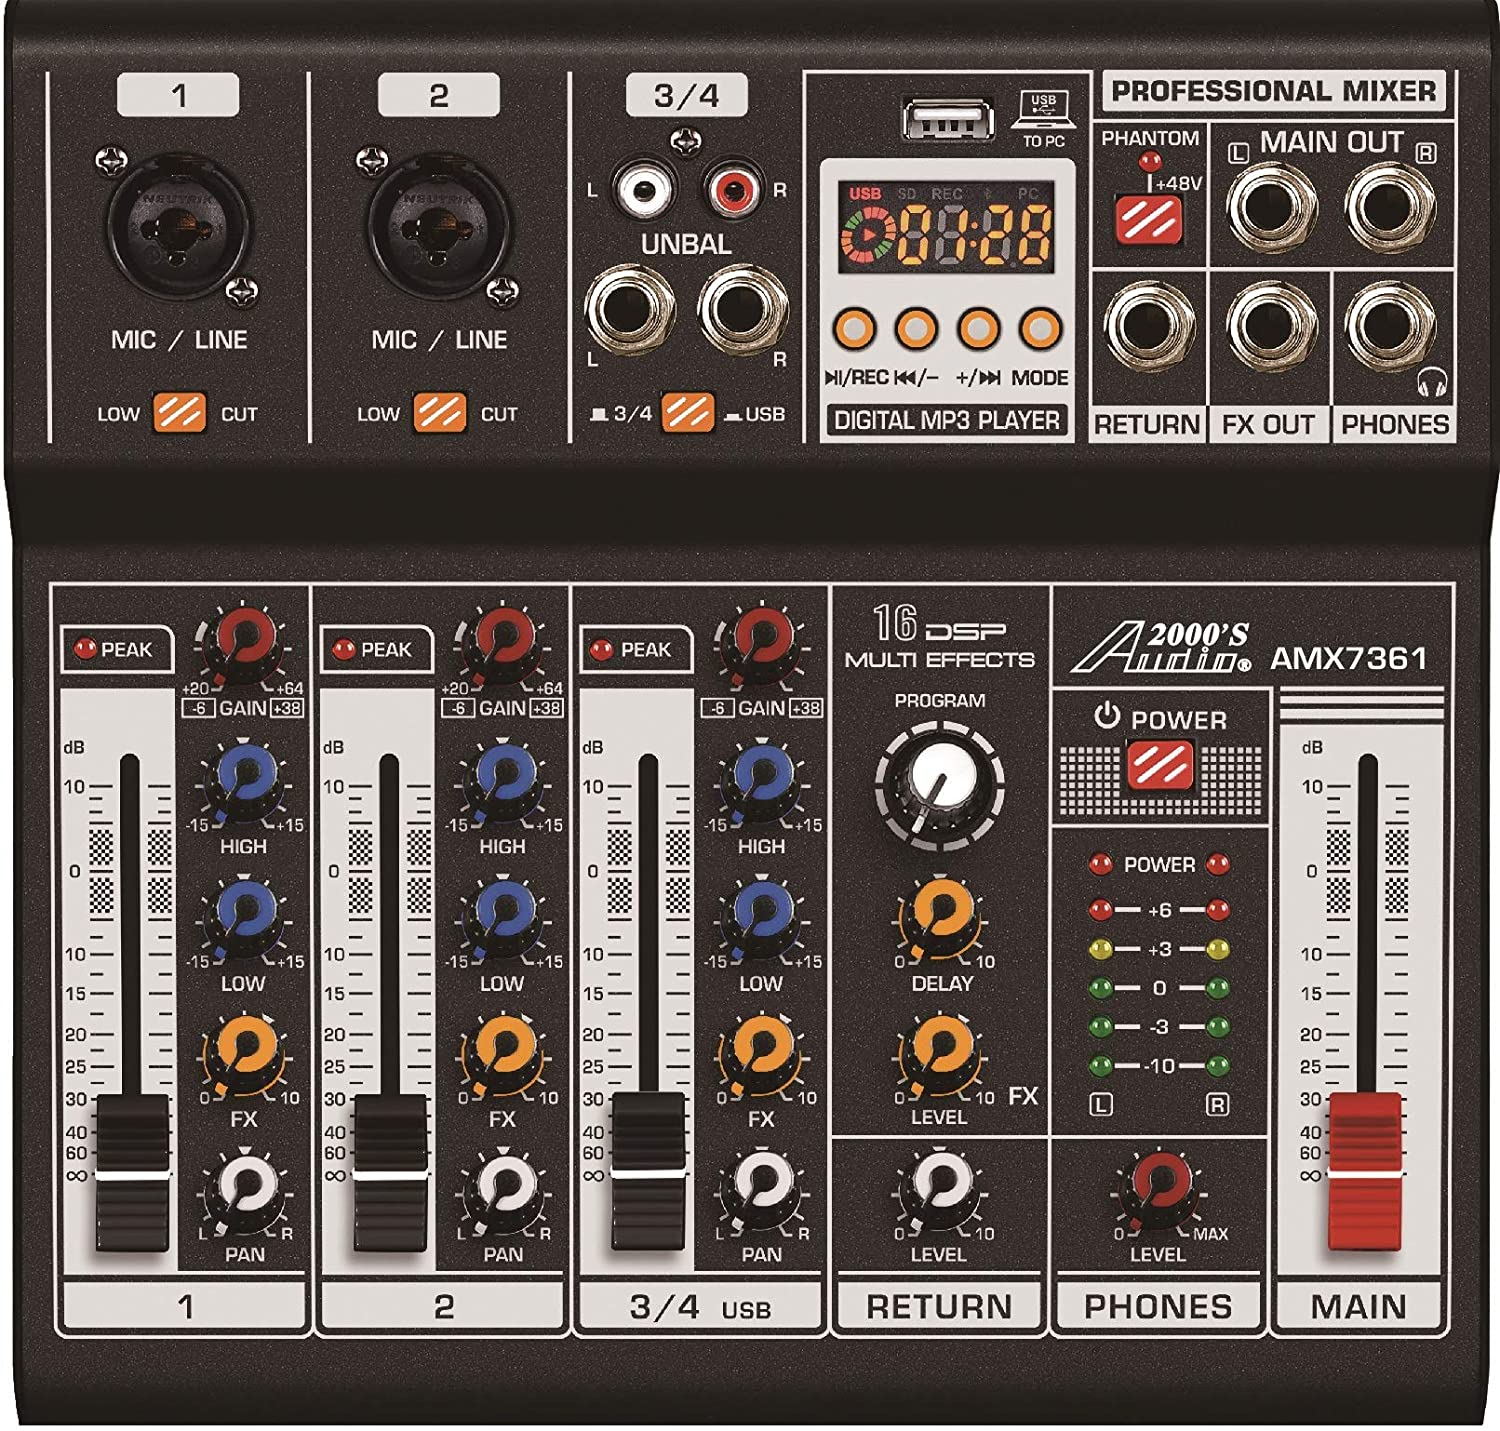 Audio2000'S AMX7361 Four-Channel Audio Mixer with USB 5V Power Supply, USB Interface, and Sound Effect